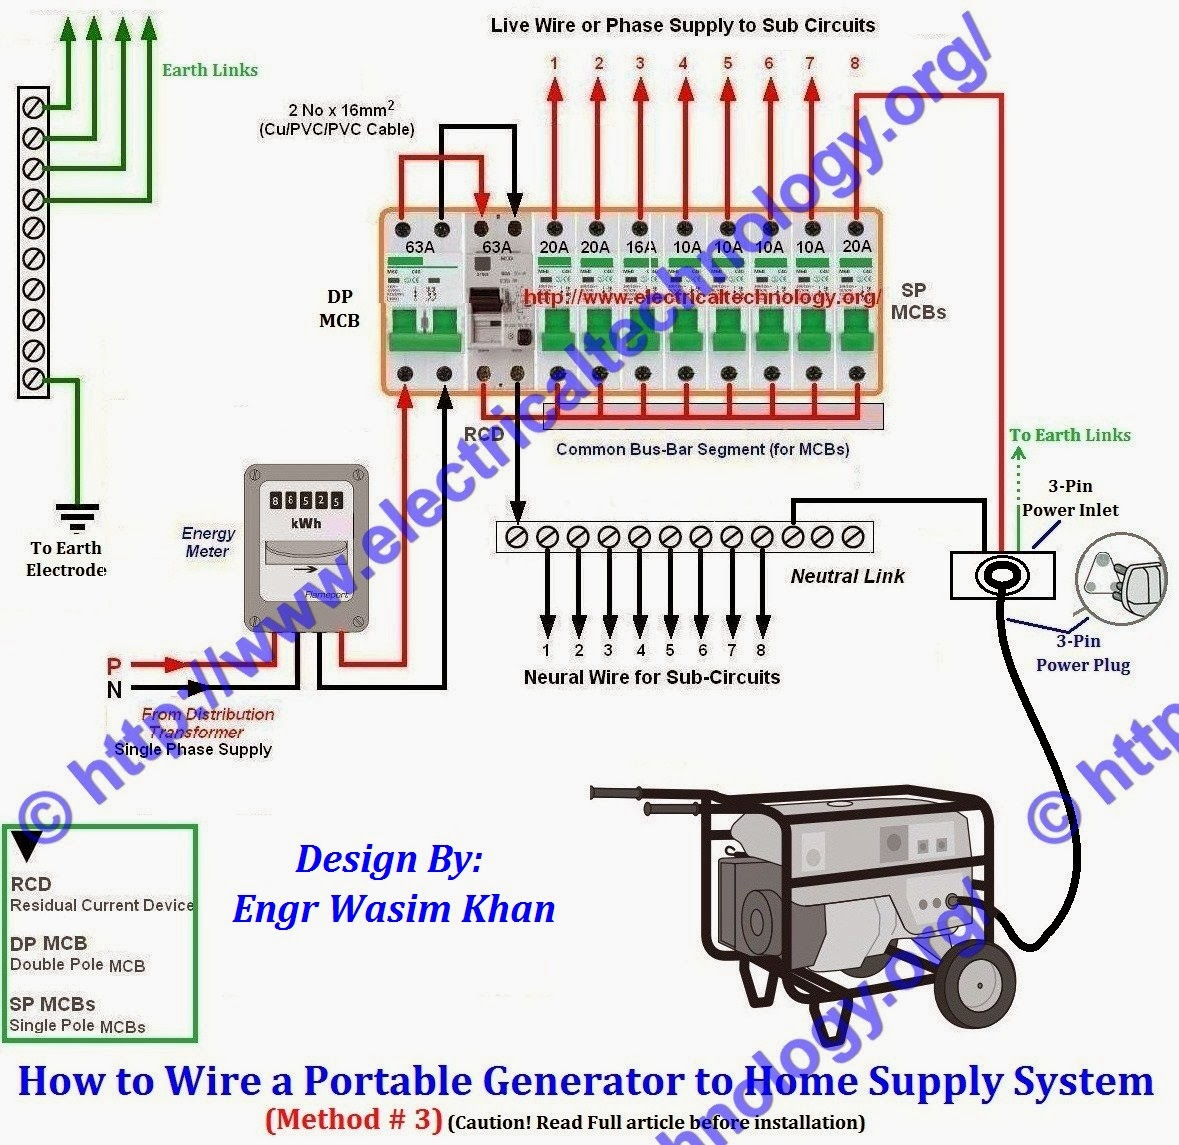 connecting generator to house wiring diagram #1 Automotive Generator Wiring Diagram connecting generator to house wiring diagram